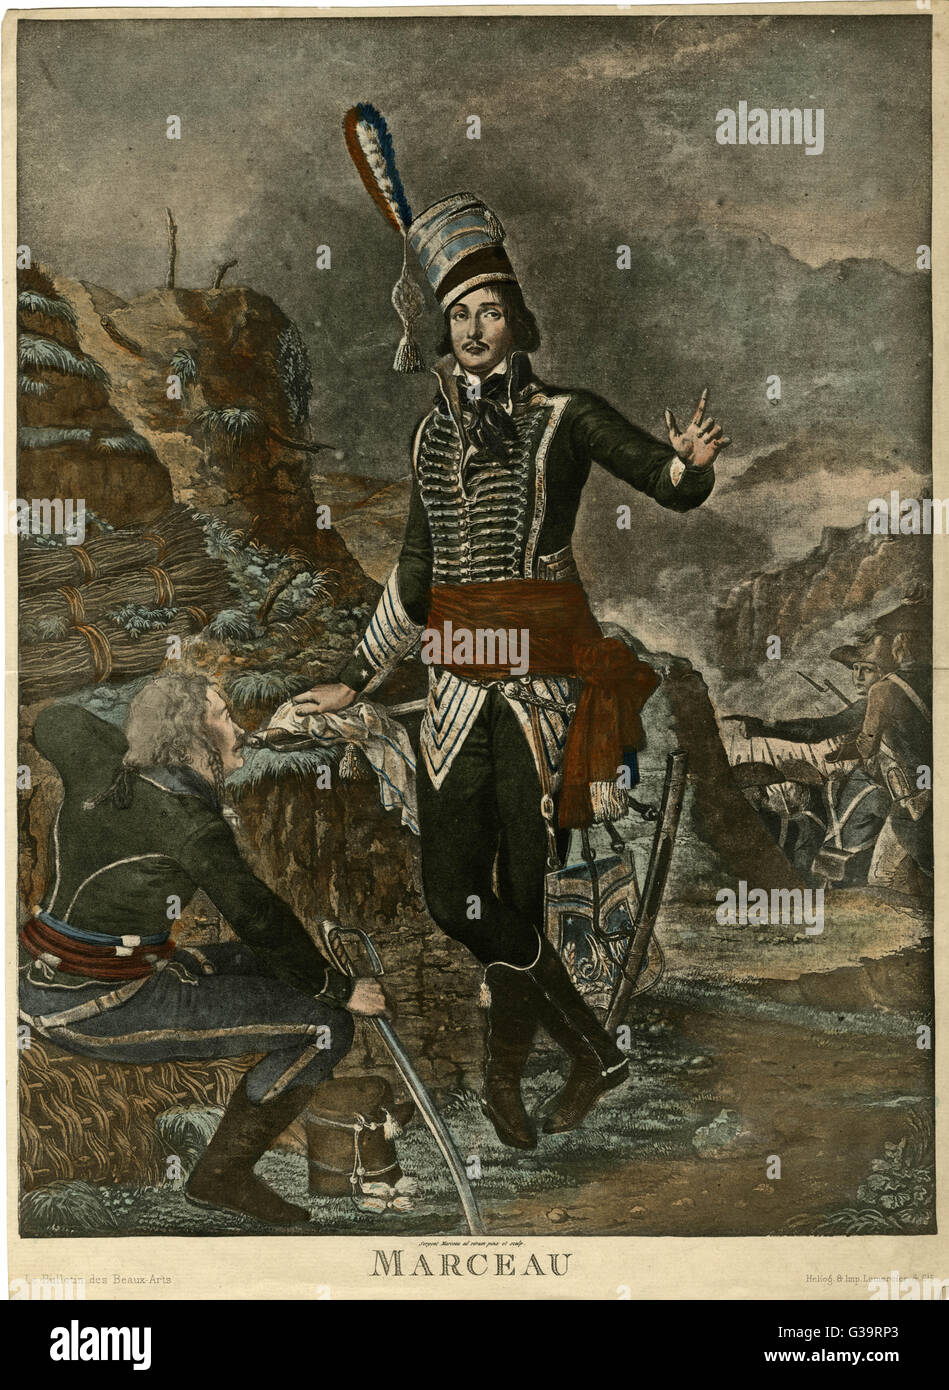 F S MARCEAU-DESGRAVIERS  French military,  with colleagues       Date: 1769 - 1796 - Stock Image